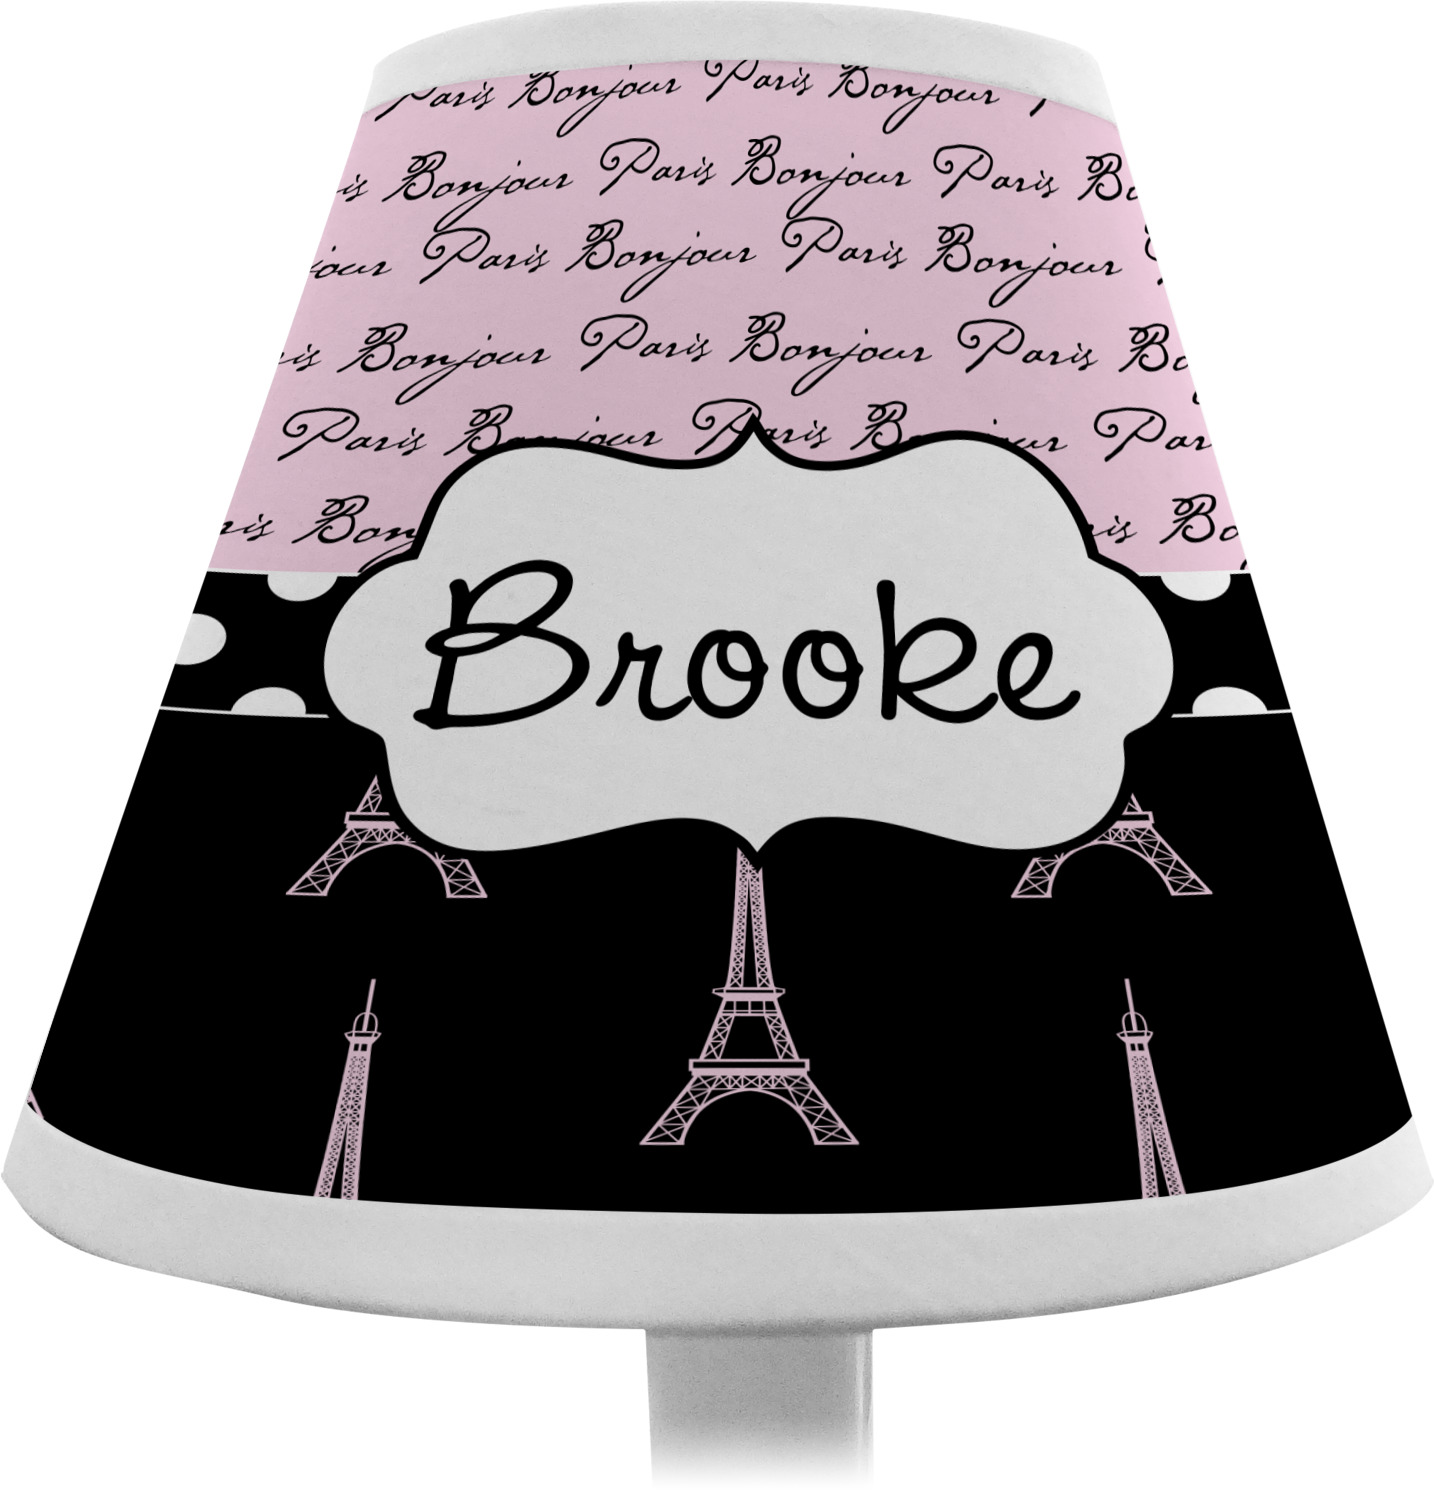 Marvelous ... Paris Bonjour And Eiffel Tower Chandelier Lamp Shade (Personalized) ...